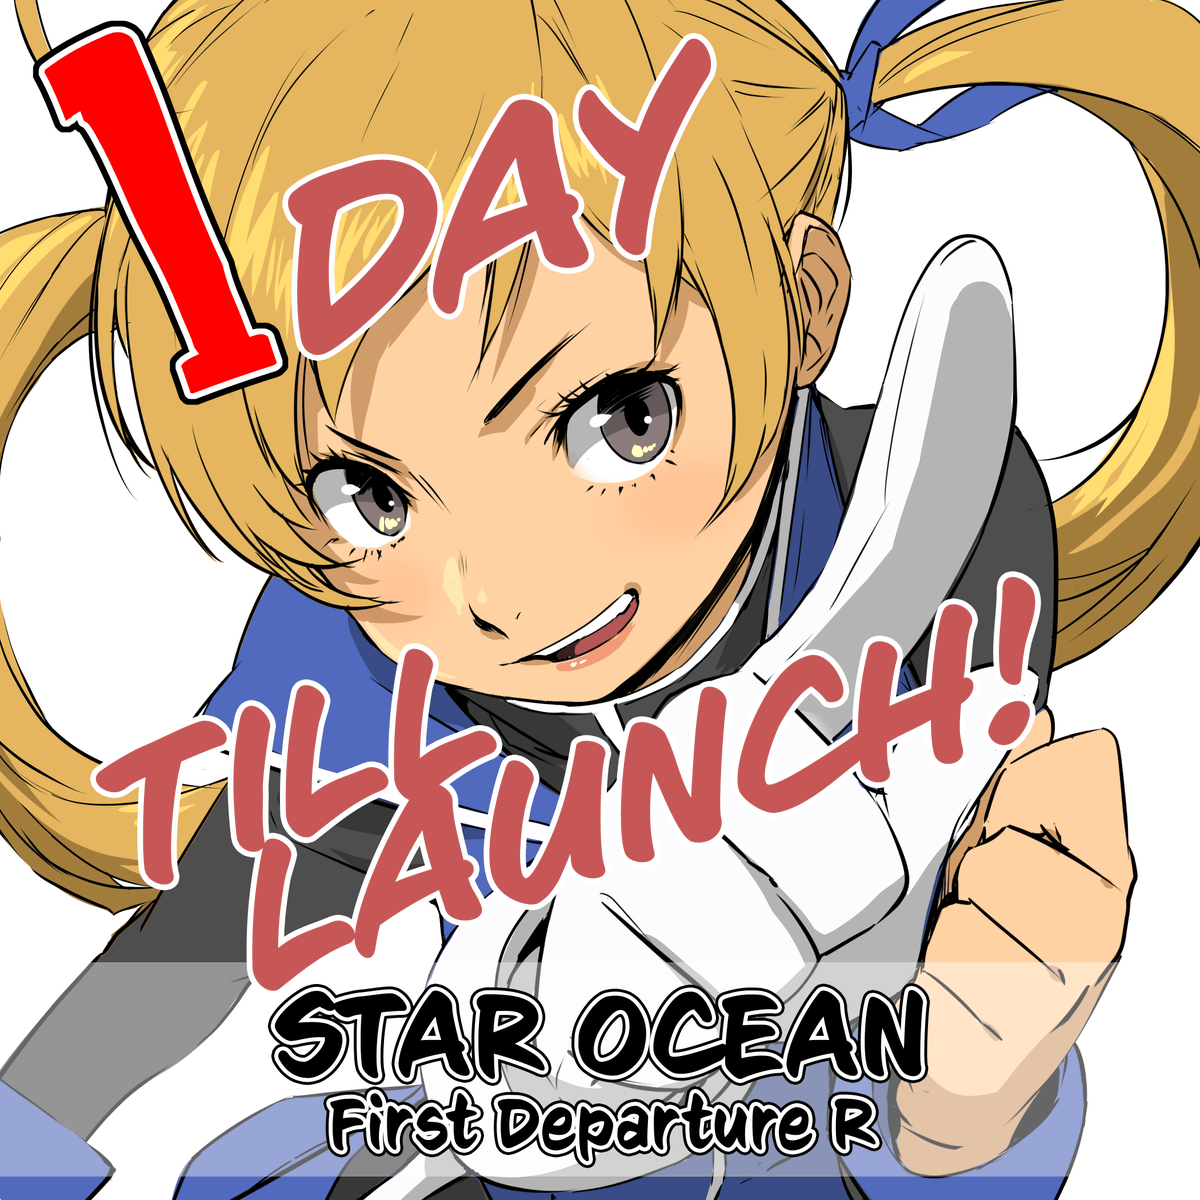 #StarOcean First Departure R lands in just one day! STAR OCEAN First Departure R will be digitally available on #PS4 and #NintendoSwitch! Learn more: sqex.link/0iv #StarOcean